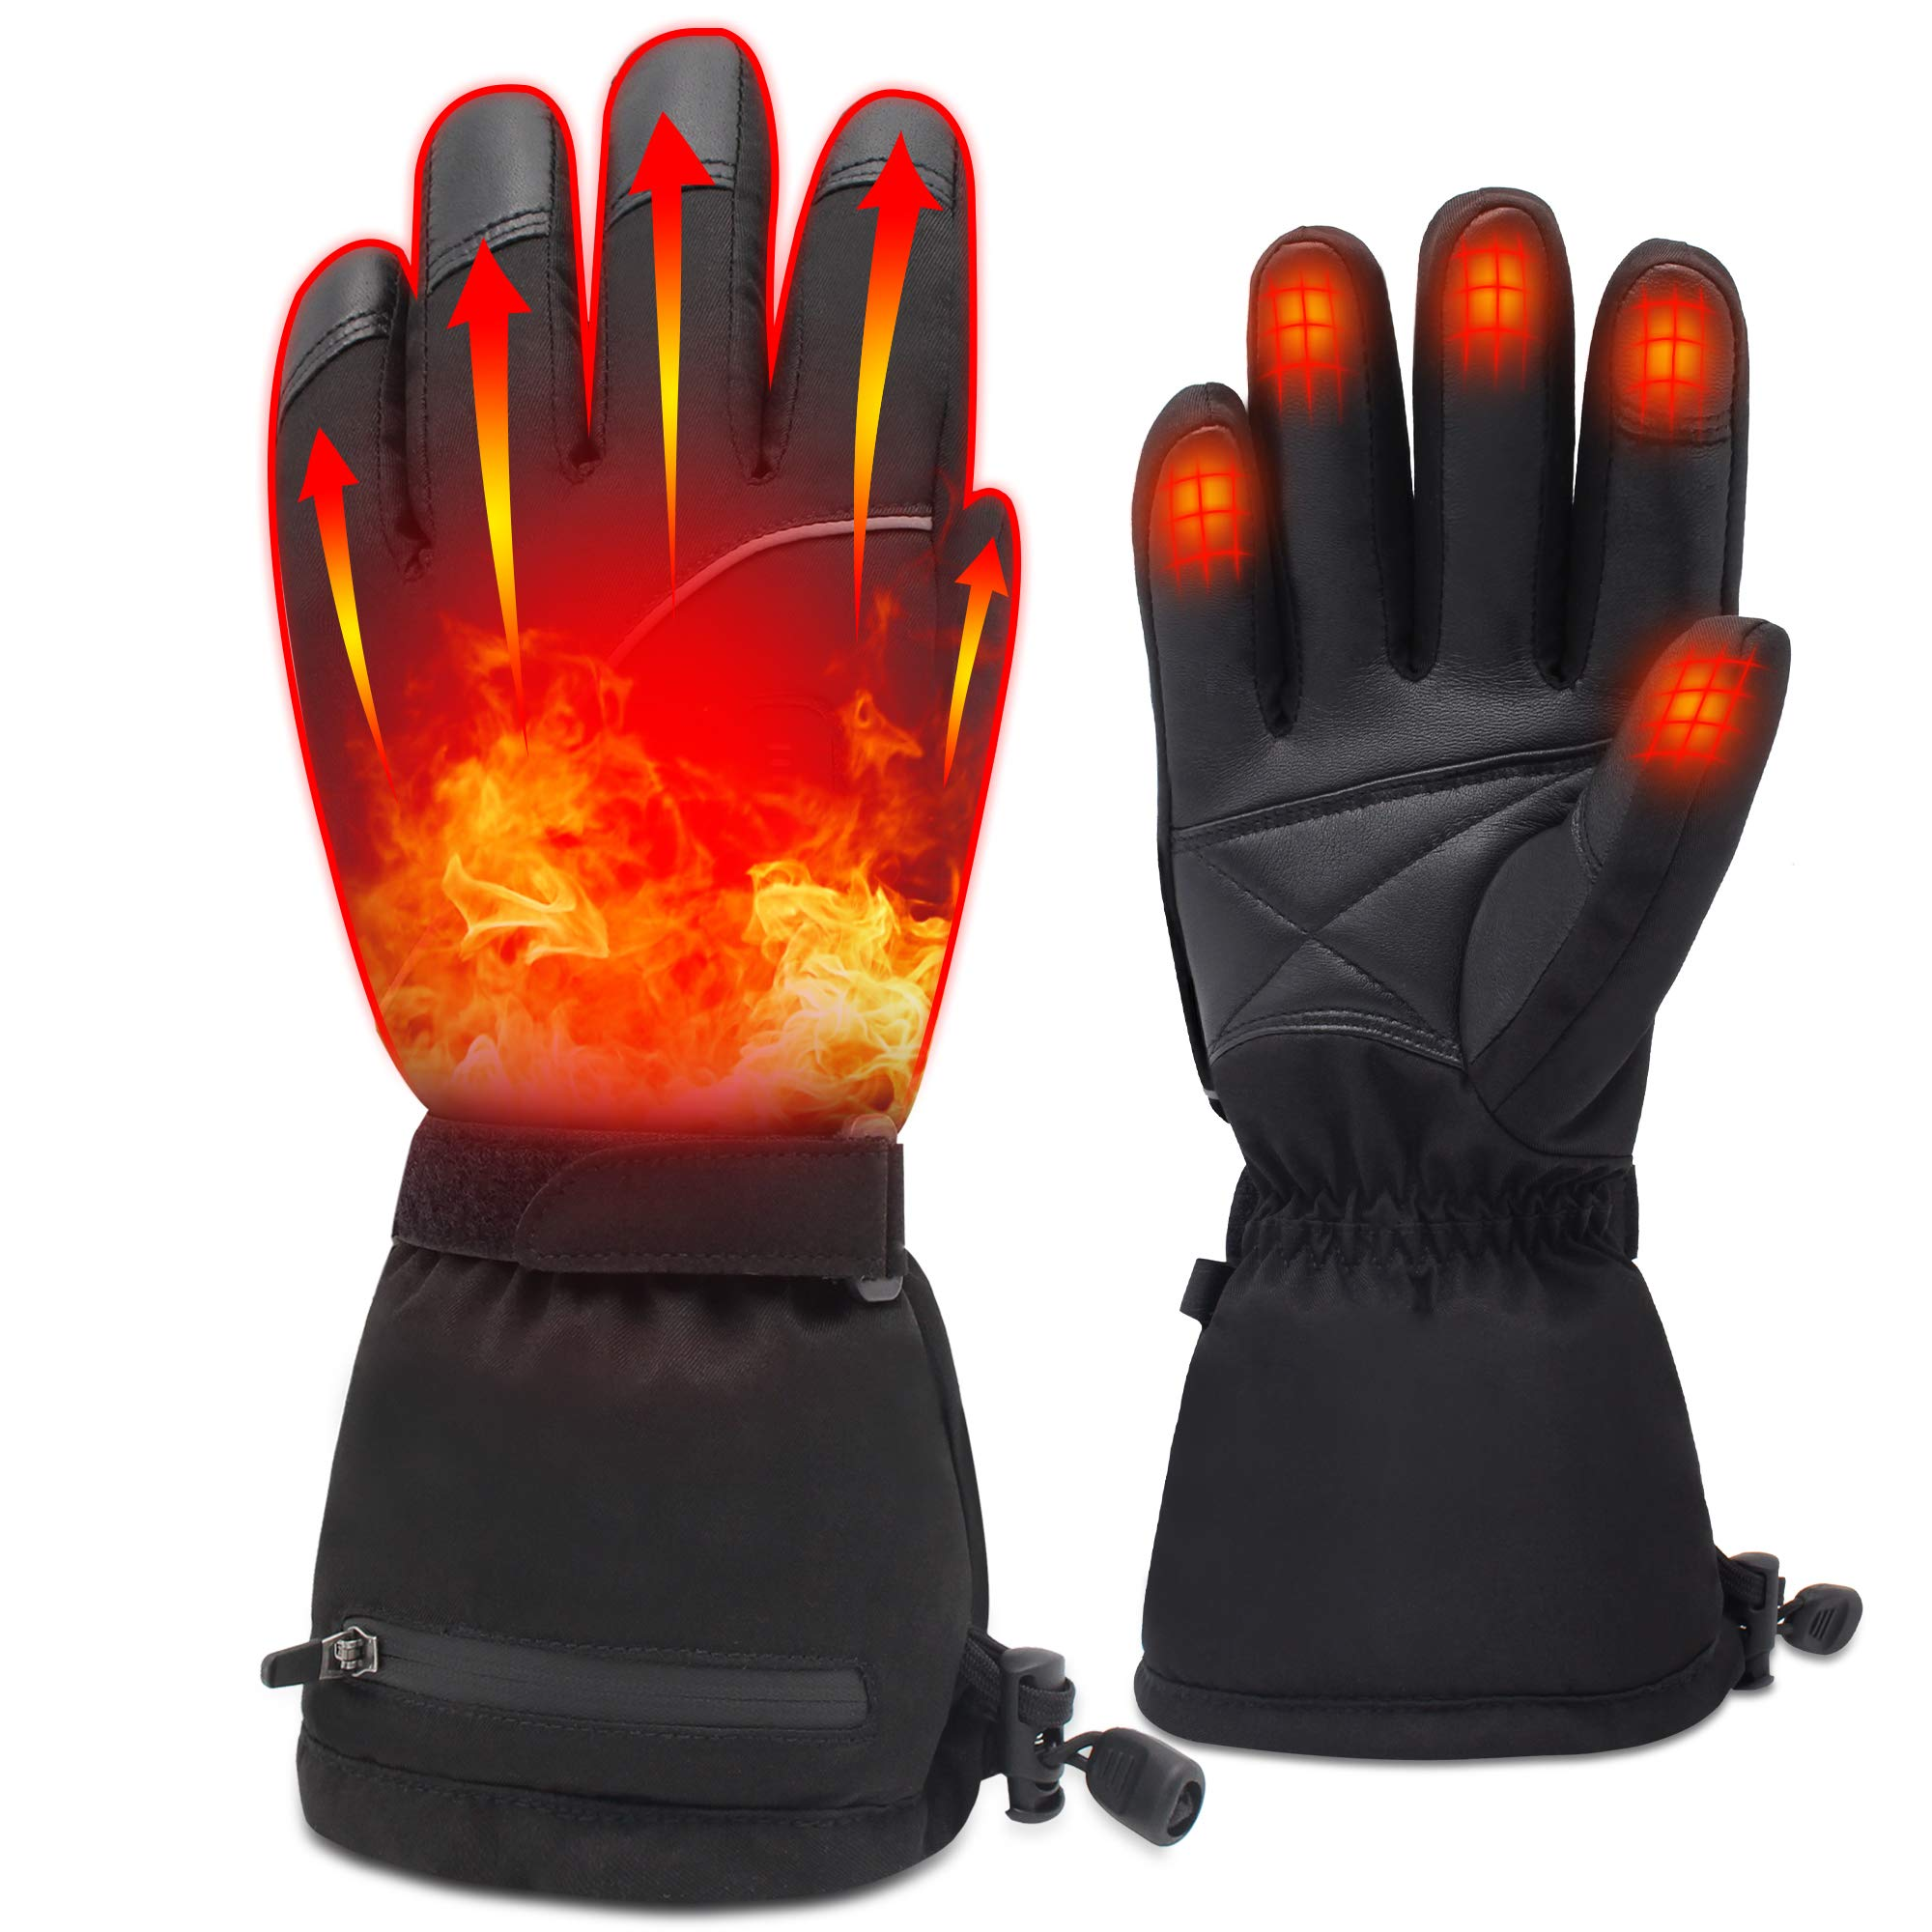 Men Woman Electric Gloves Rechargeable Batteries Heated Gloves Hand Warmers Gloves Heated Motorcycle Gloves Touchscreen Heated Gloves for Chronically Cold Hand, Cotton Lining 7.4V Gloves by MMlove